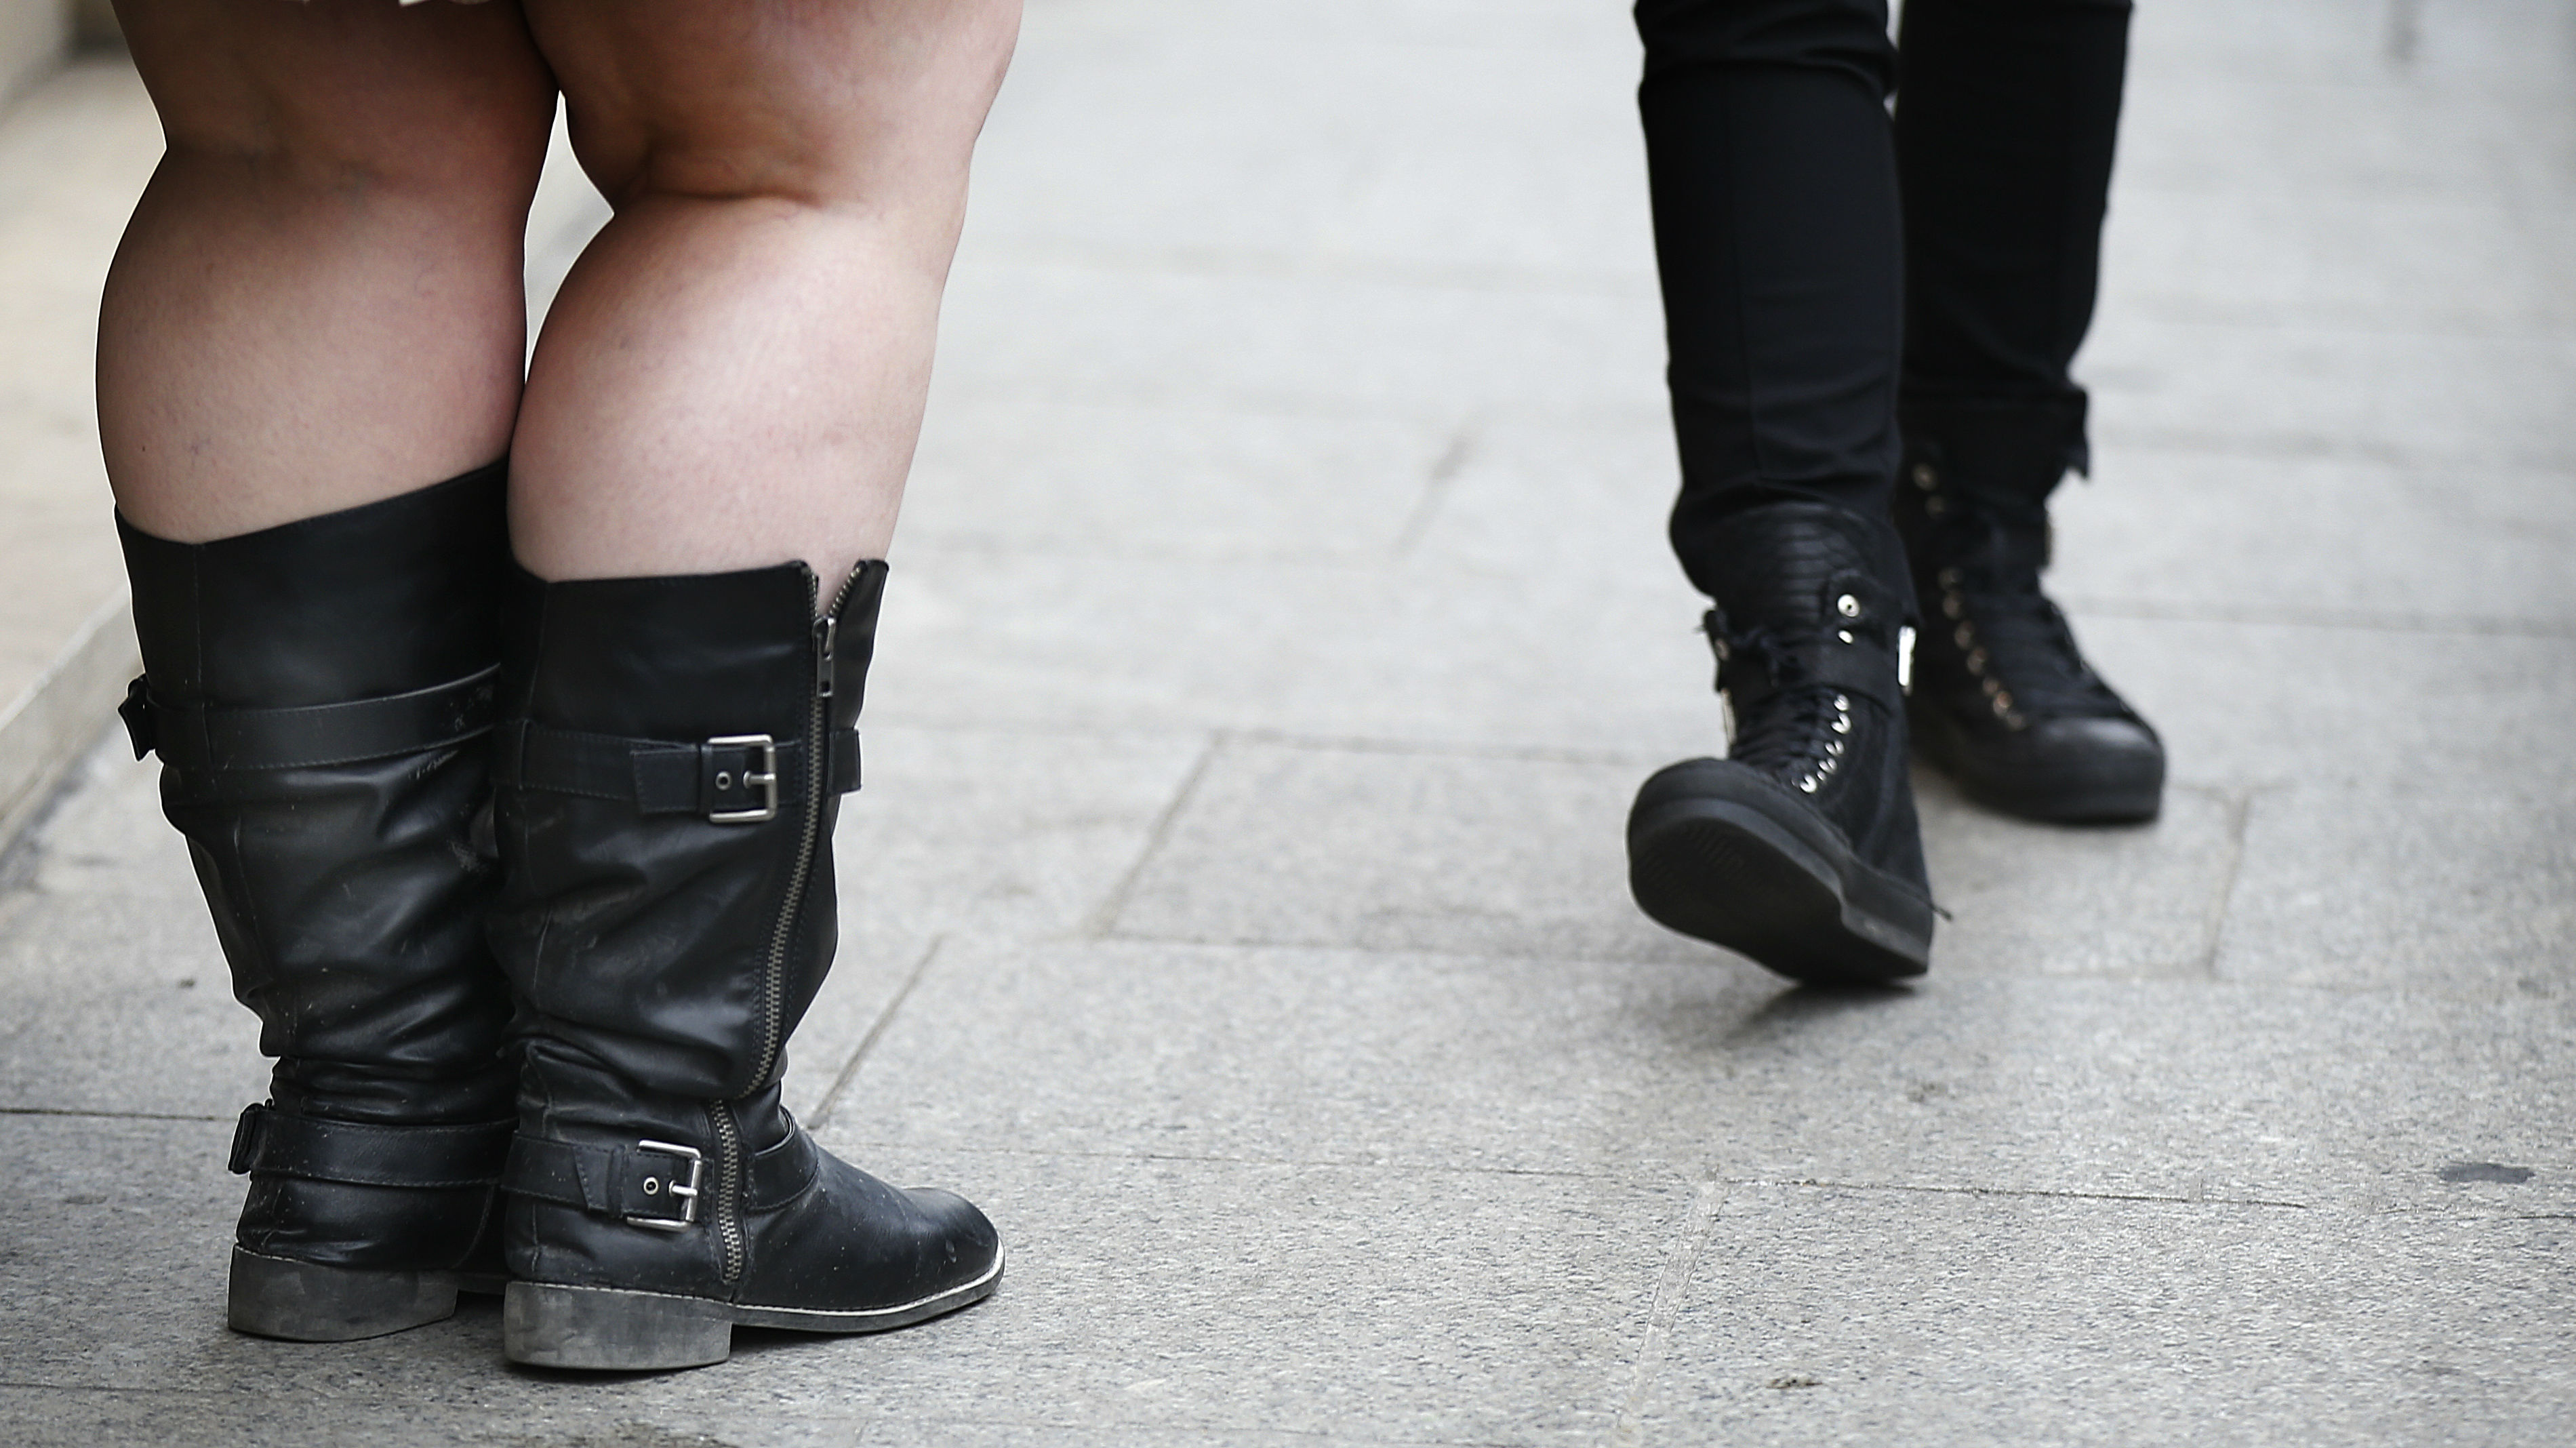 The legs of women are pictured as they walk along a street in Paris, France, October 14, 2015. Worldwide obesity has more than doubled since 1980, Worldwide Health Organization said in its January report. In 2014, more than 1.9 billion adults, 18 years and older, were overweight. Of these over 600 million were obese.